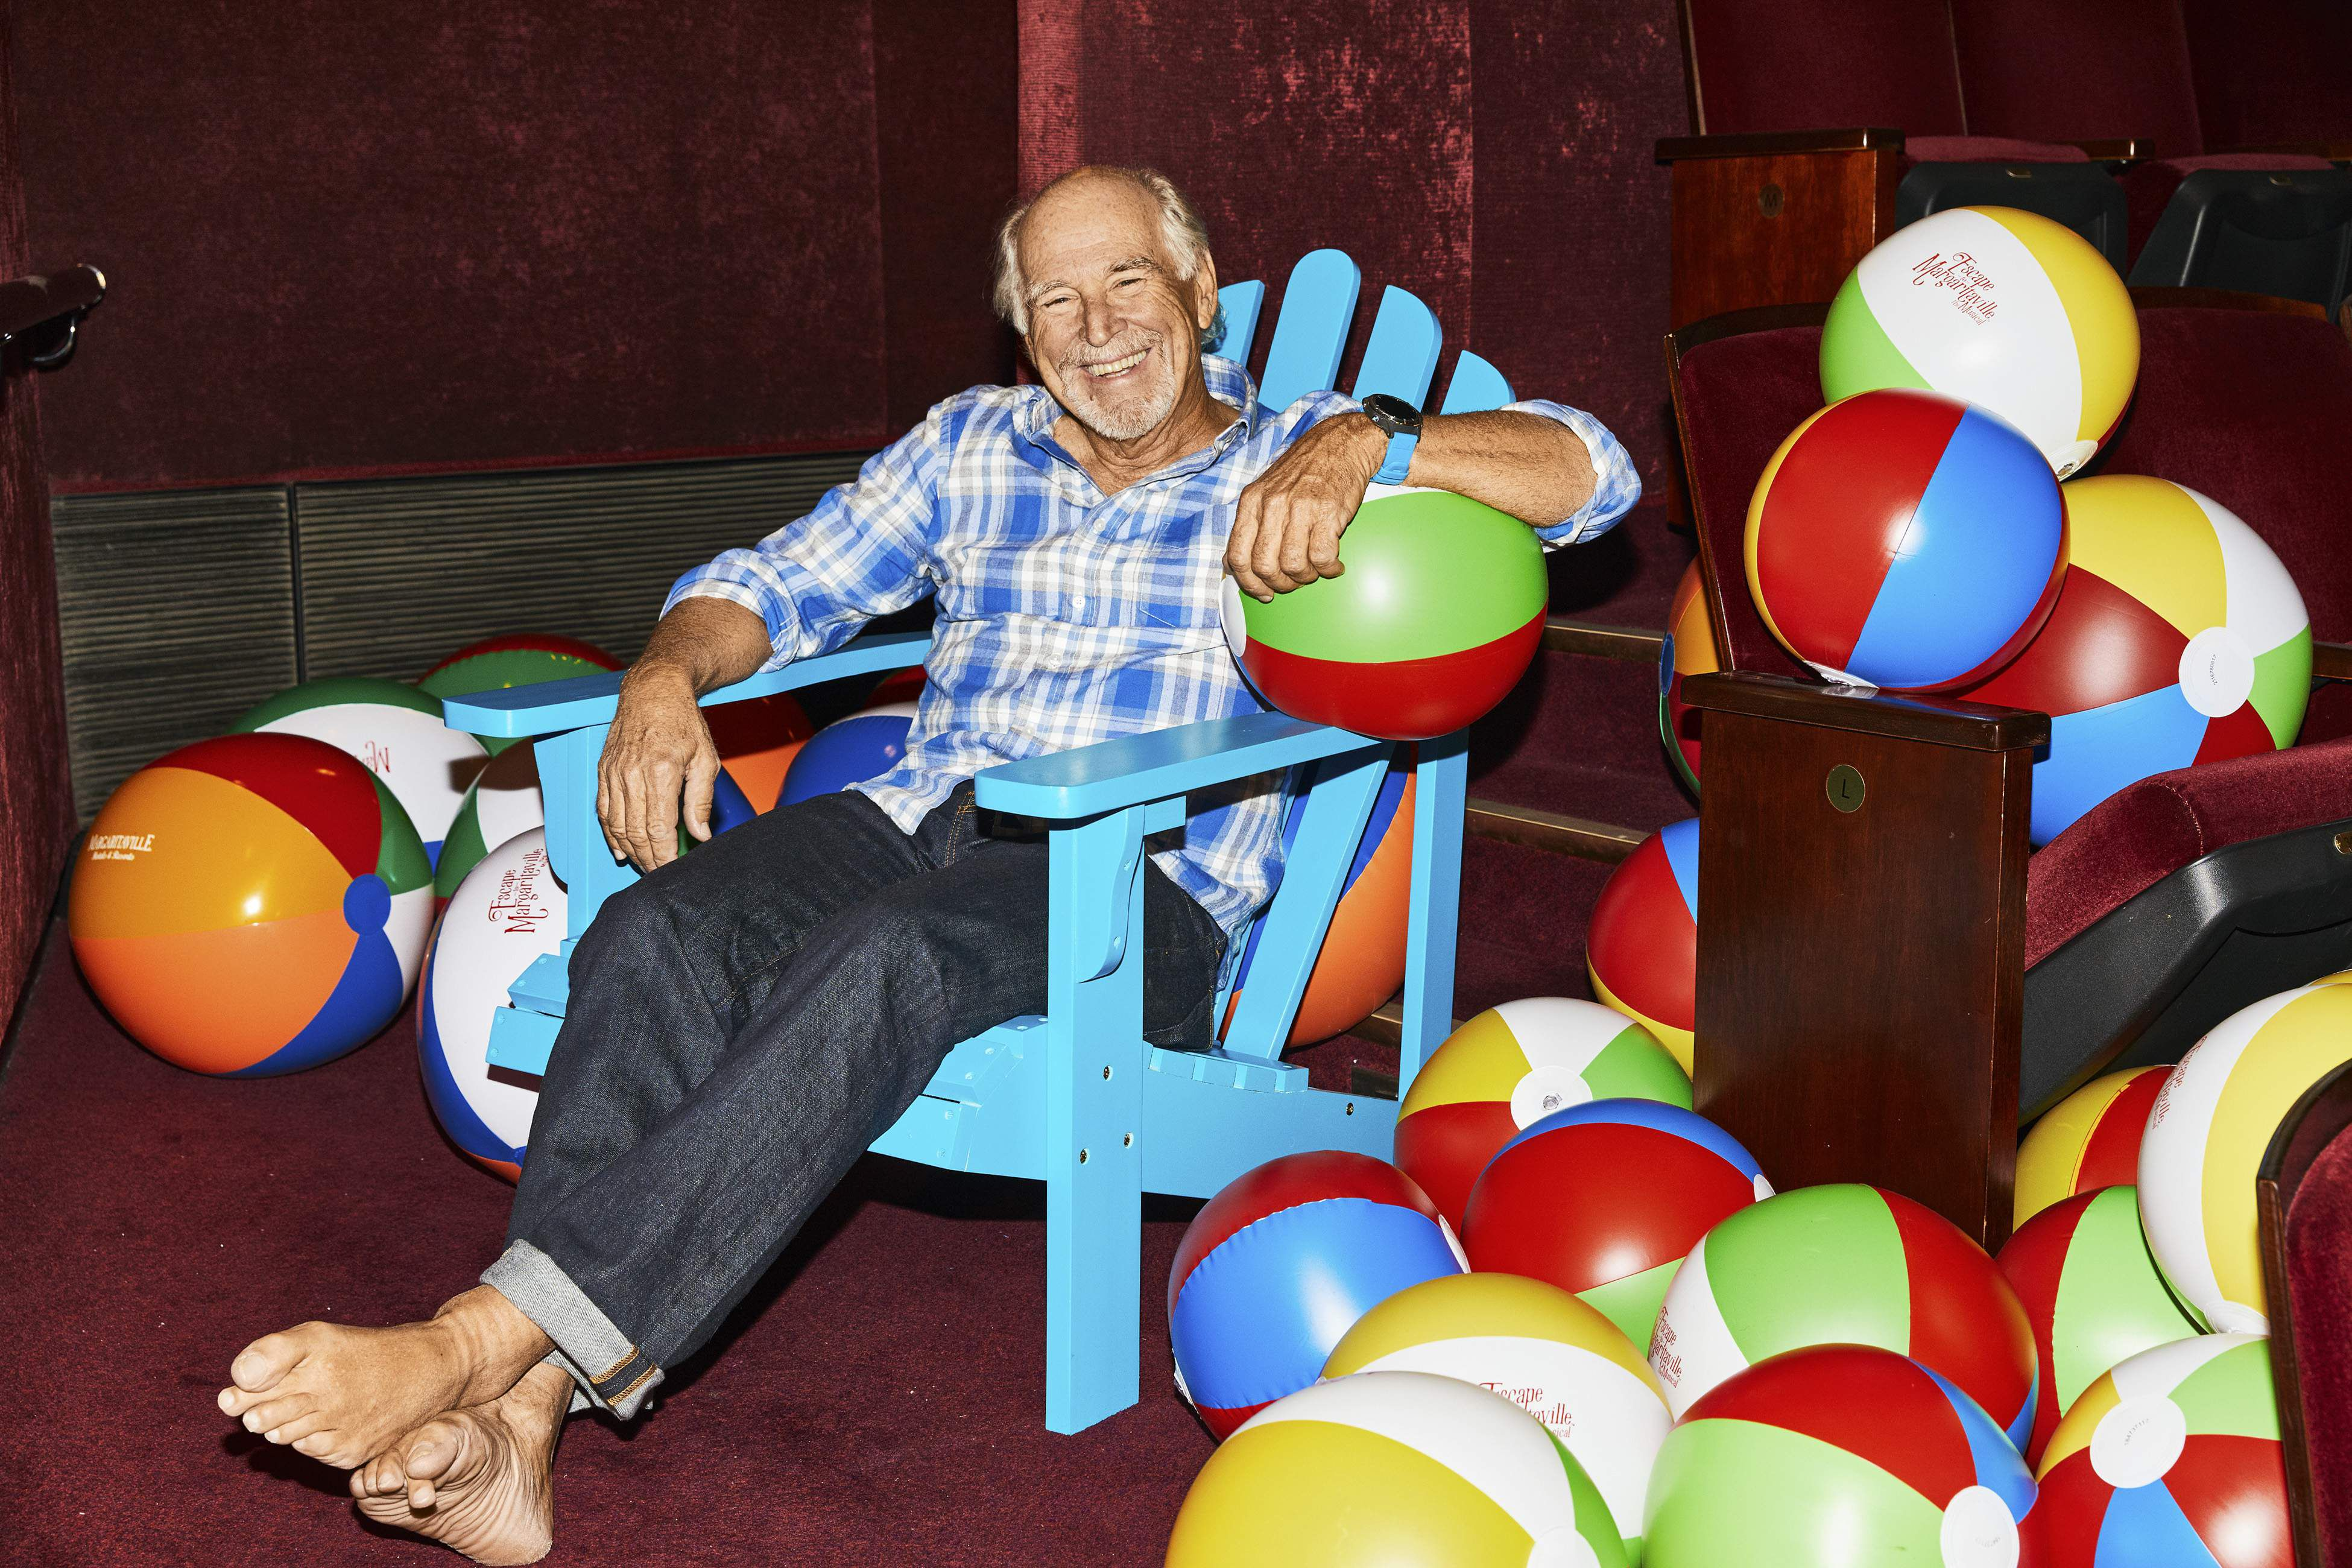 Even Jimmy Buffett does not live the Jimmy Buffett lifestyle